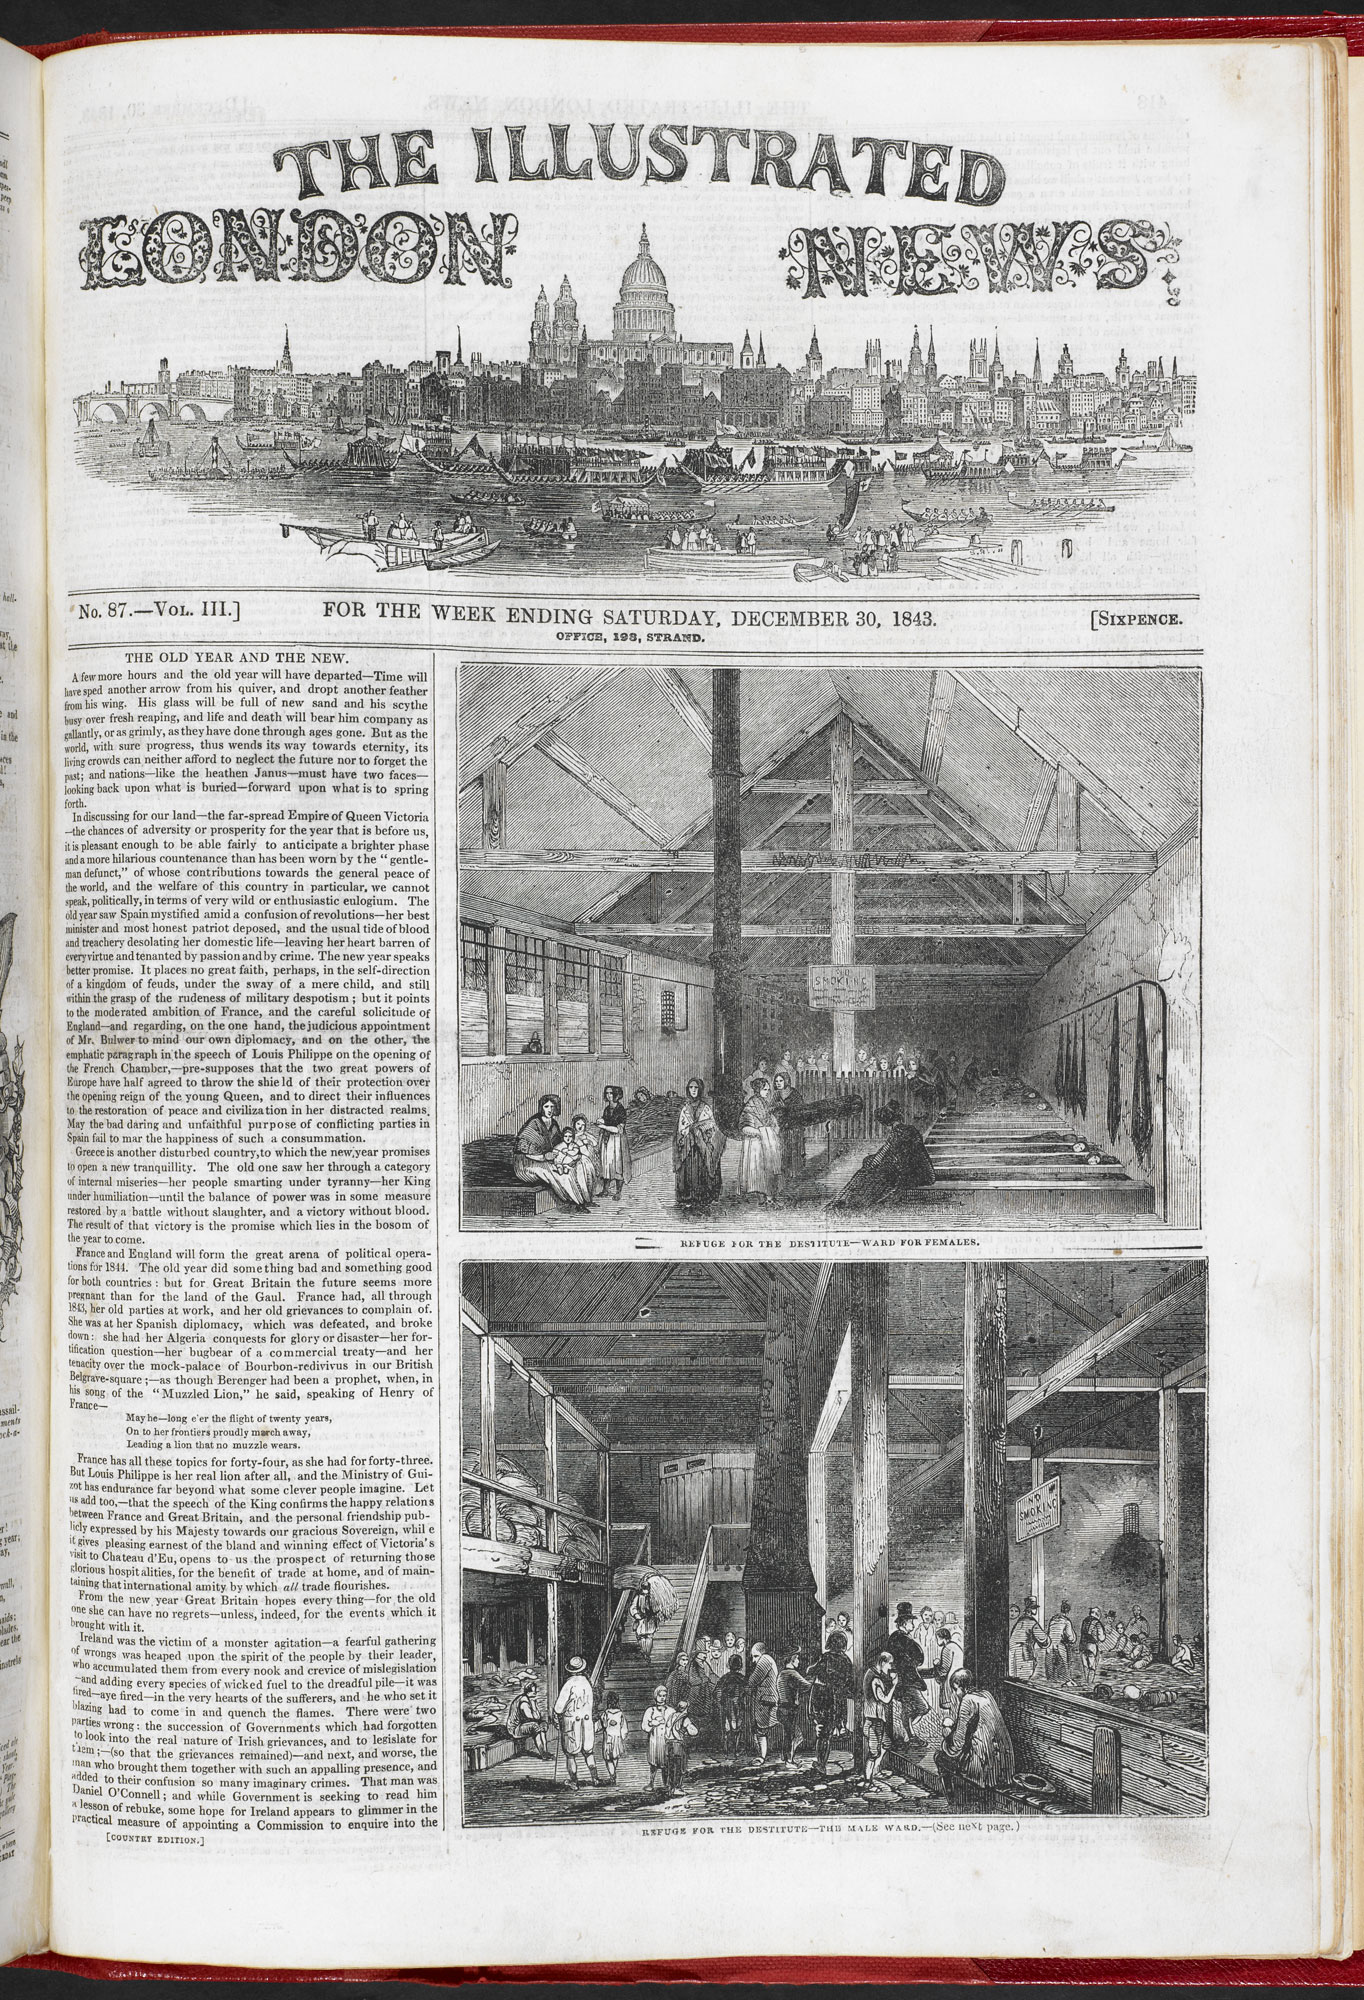 Refuges for the Destitute' from Illustrated London News [page: 417]